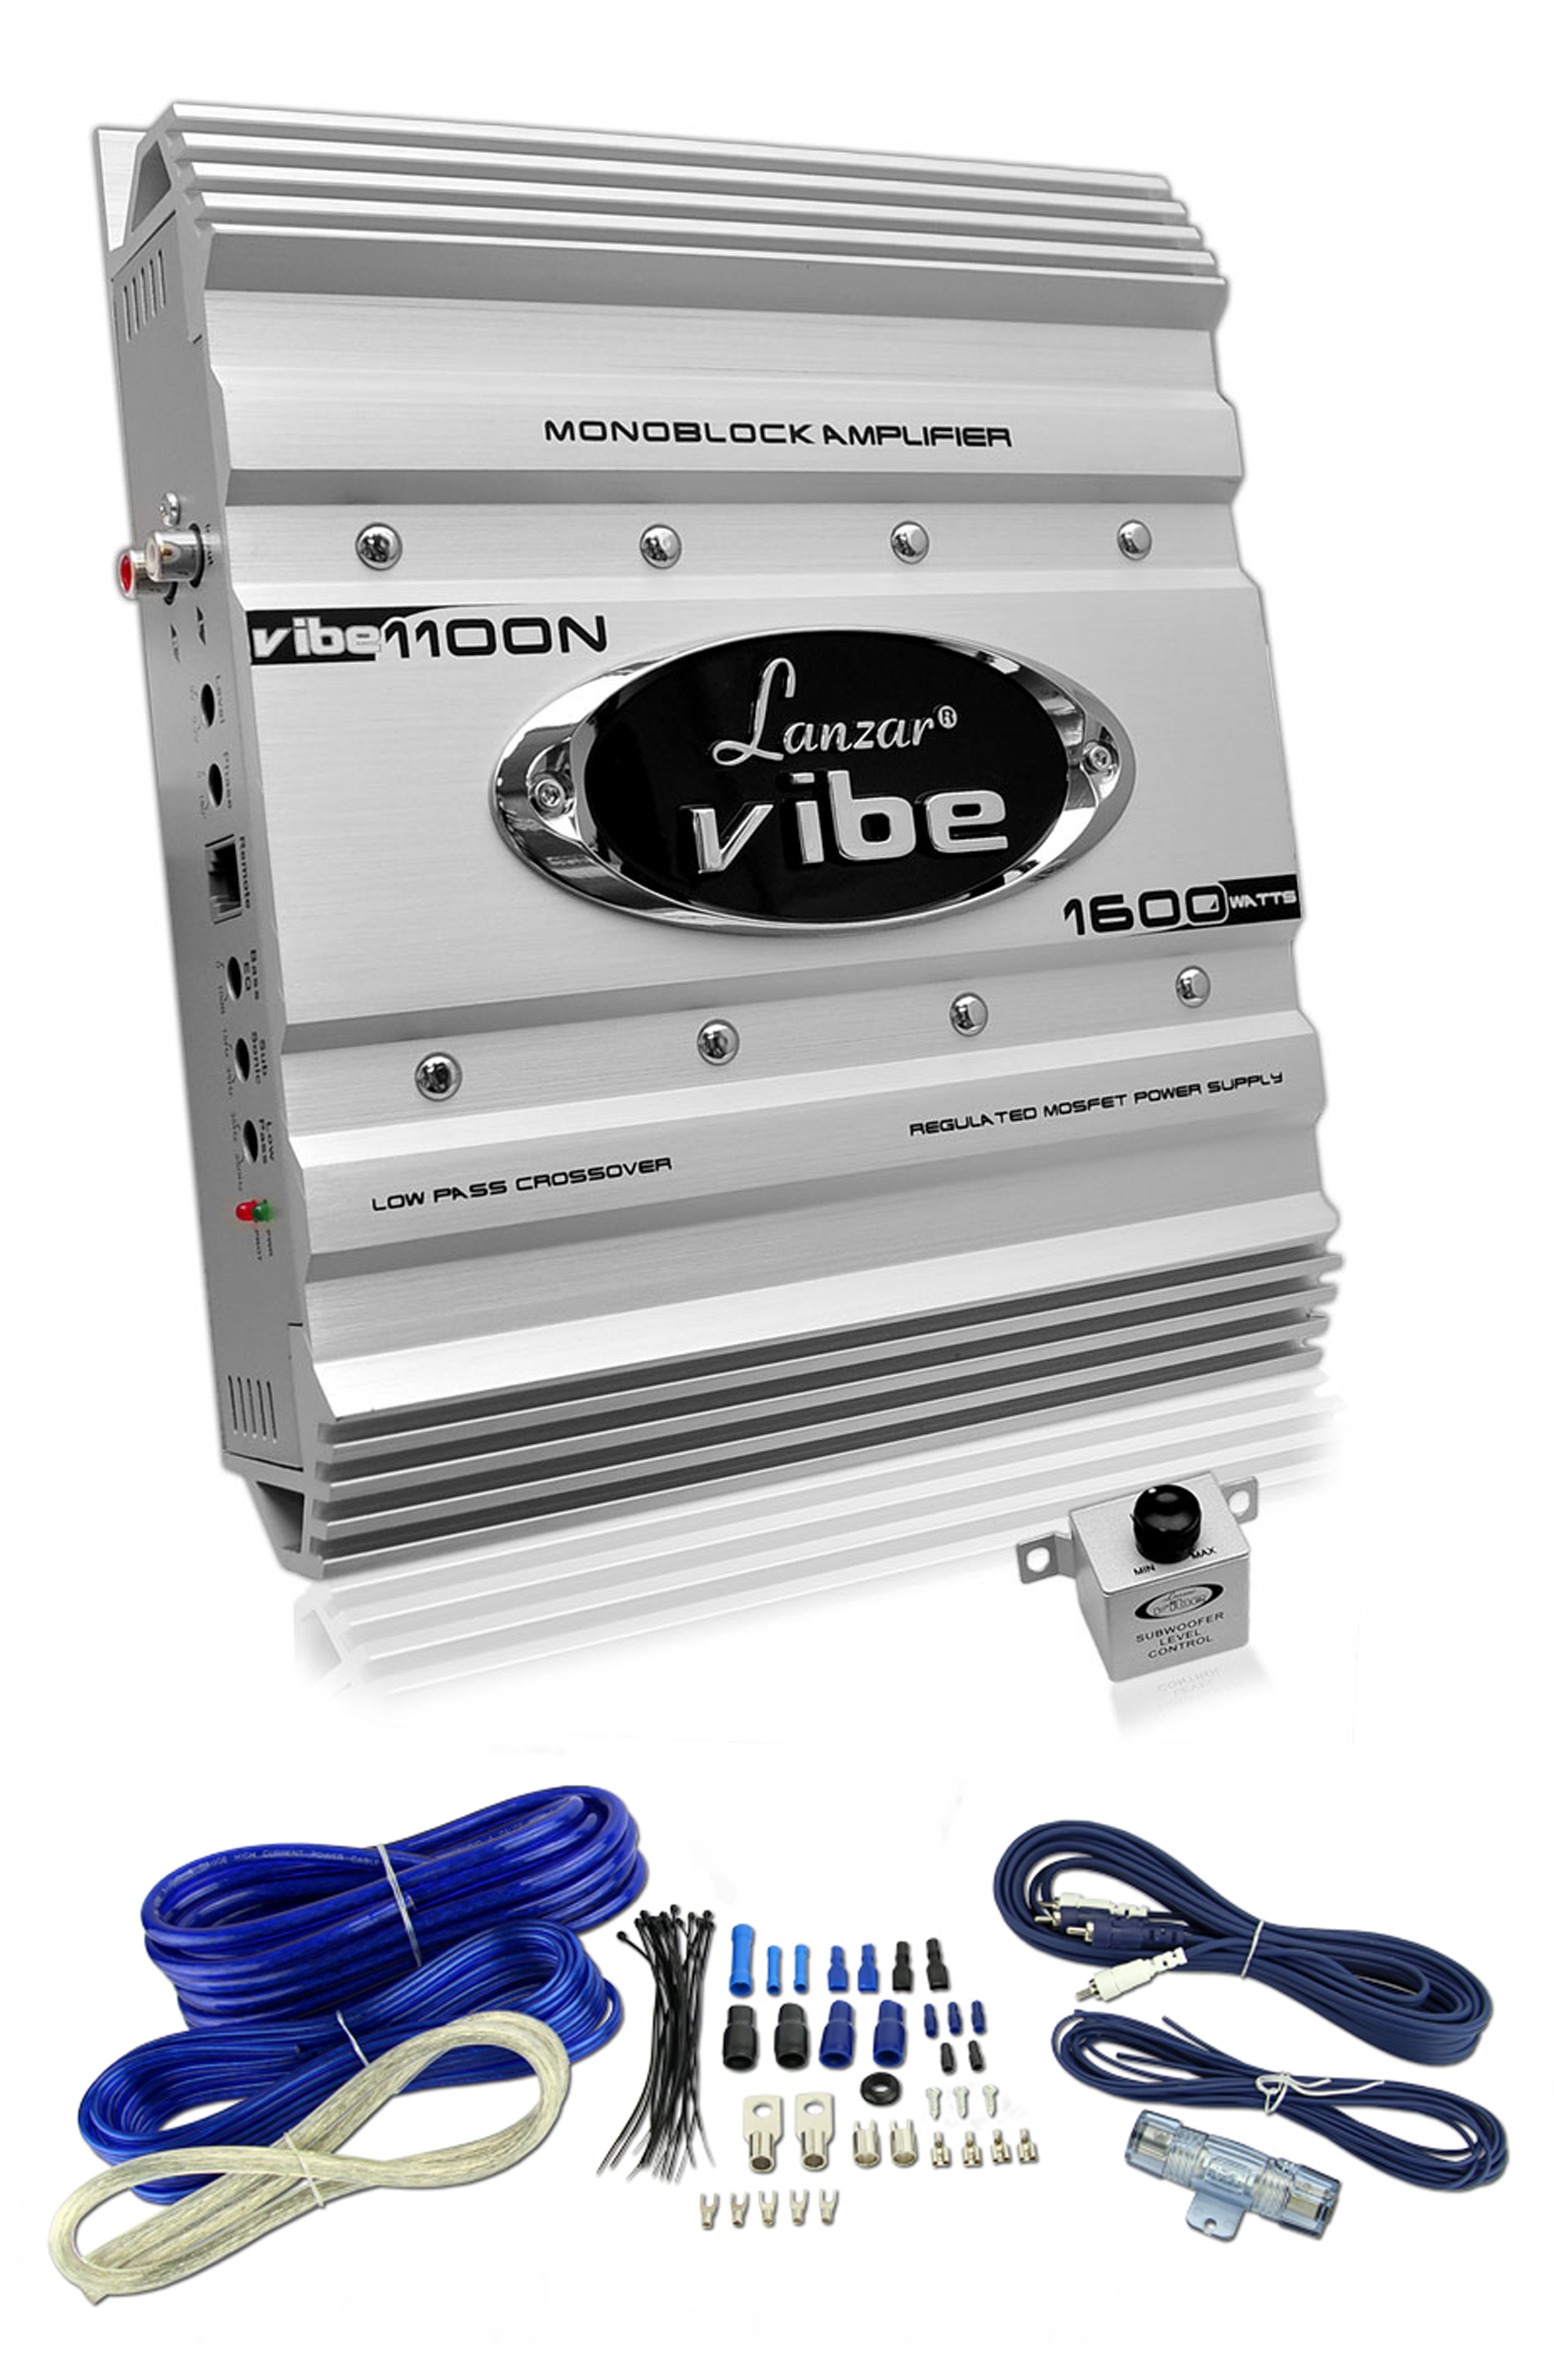 hight resolution of new lanzar vibe1100n 1600 watt mono 1 channel car audio amplifier lanzar amp 1400 1 ch lanzar amp wiring